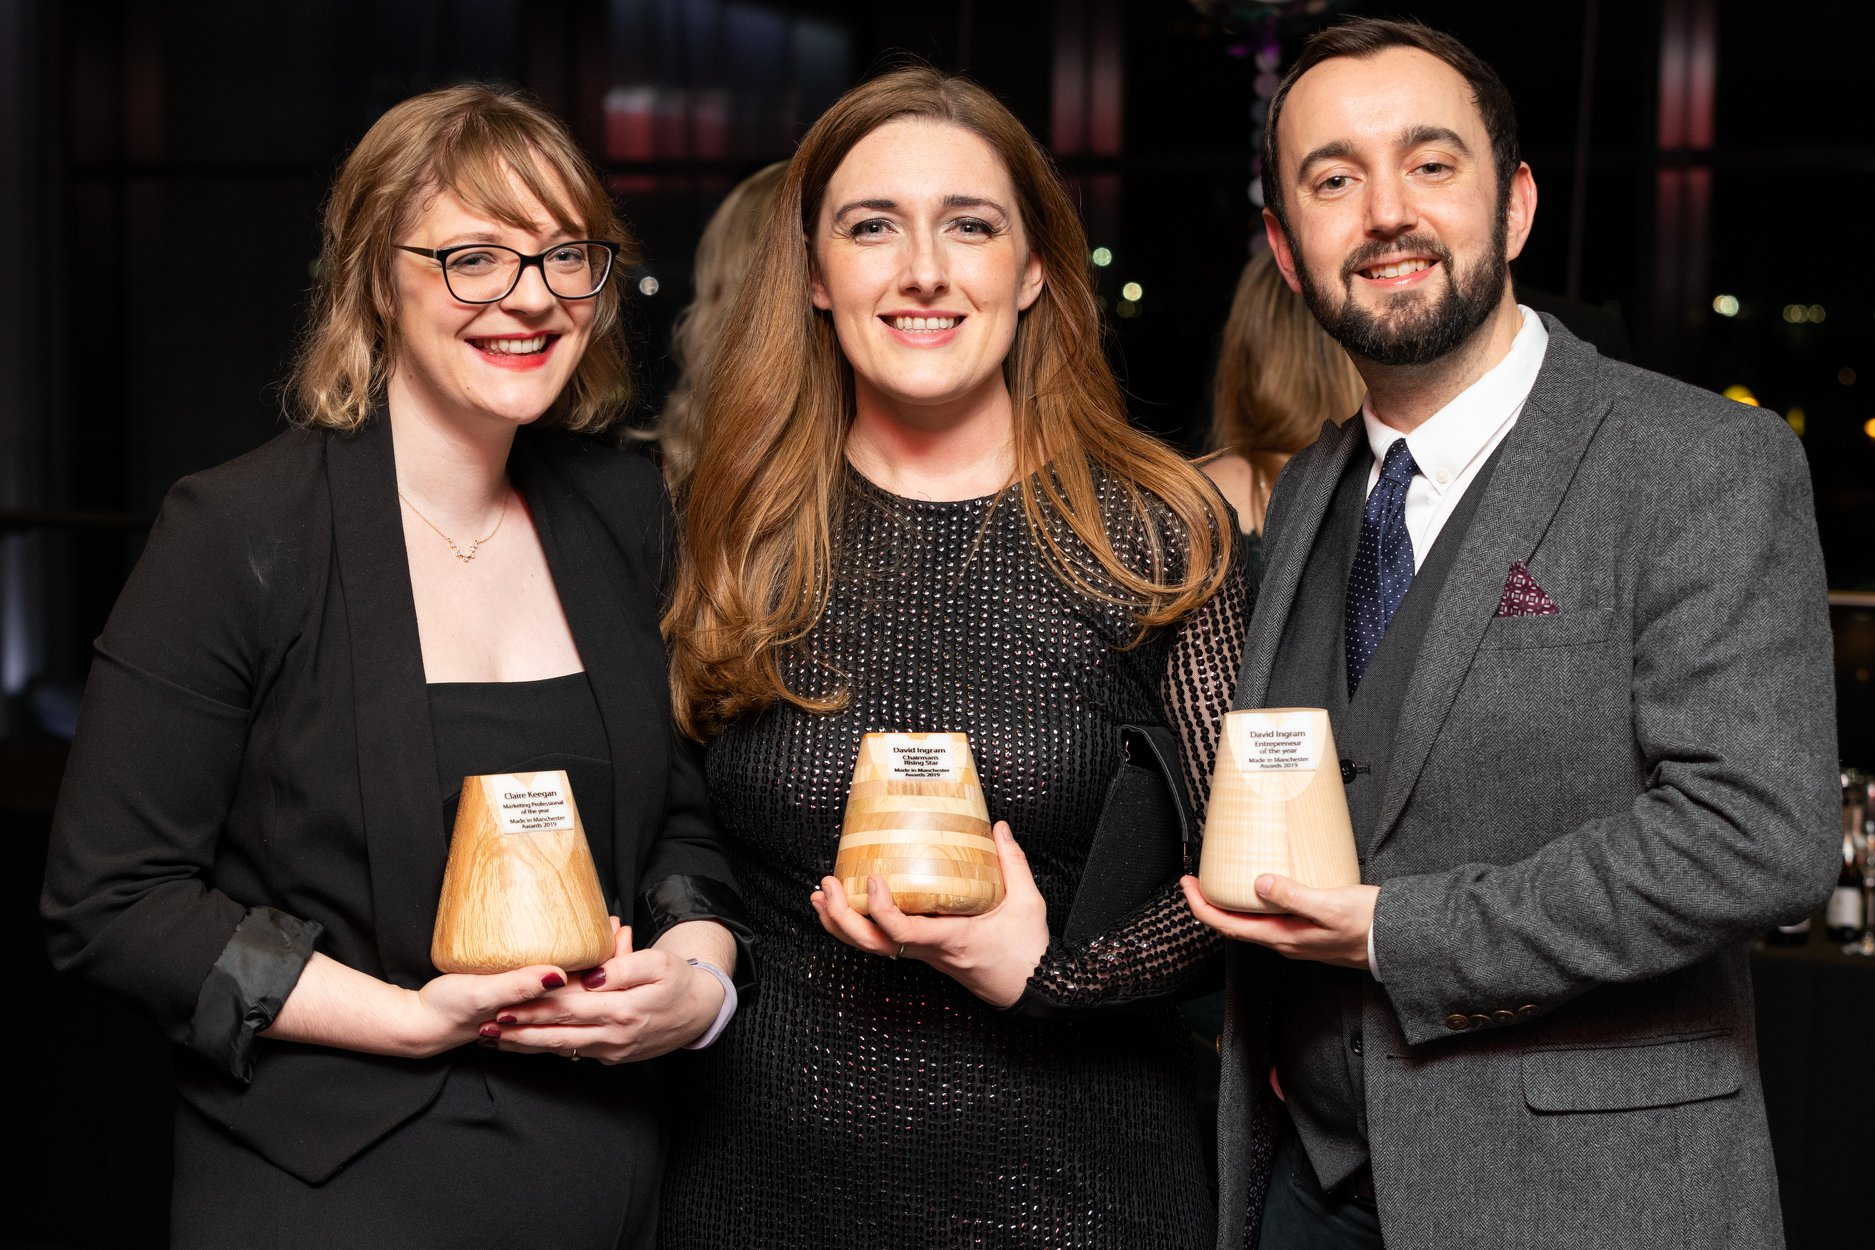 David Ingram of Bring Digital wins two awards at the Made in Manchester Awards